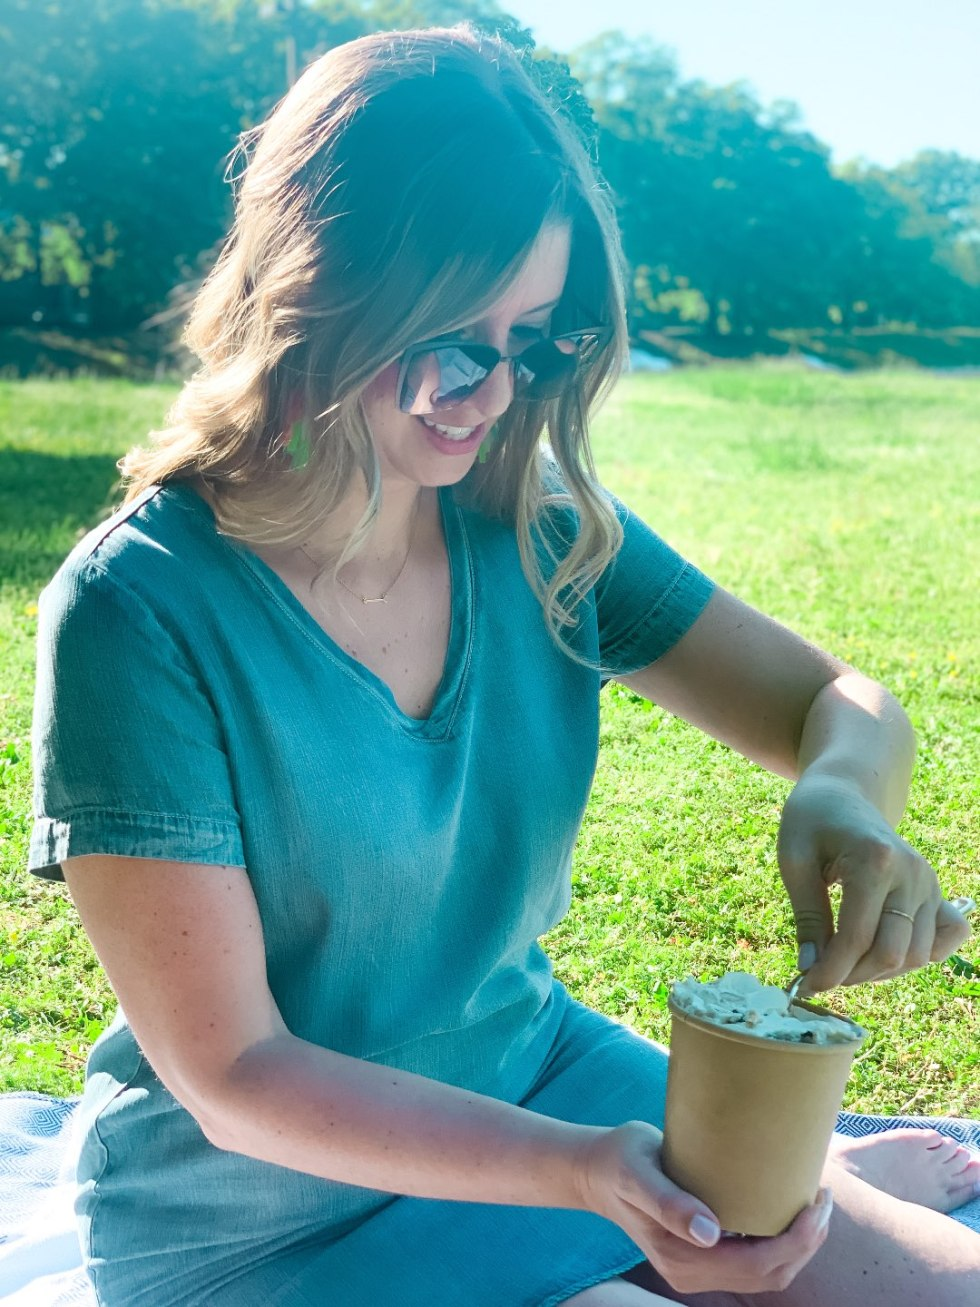 The Top 3 Places to Have a Picnic in Raleigh - I'm Fixin' To - @mbg0112 |  Picnic in Raleigh by popular North Carolina blog, I'm Fixin' To: image of a woman sitting on a blue tribal print blanket and eating Two Roosters ice cream.